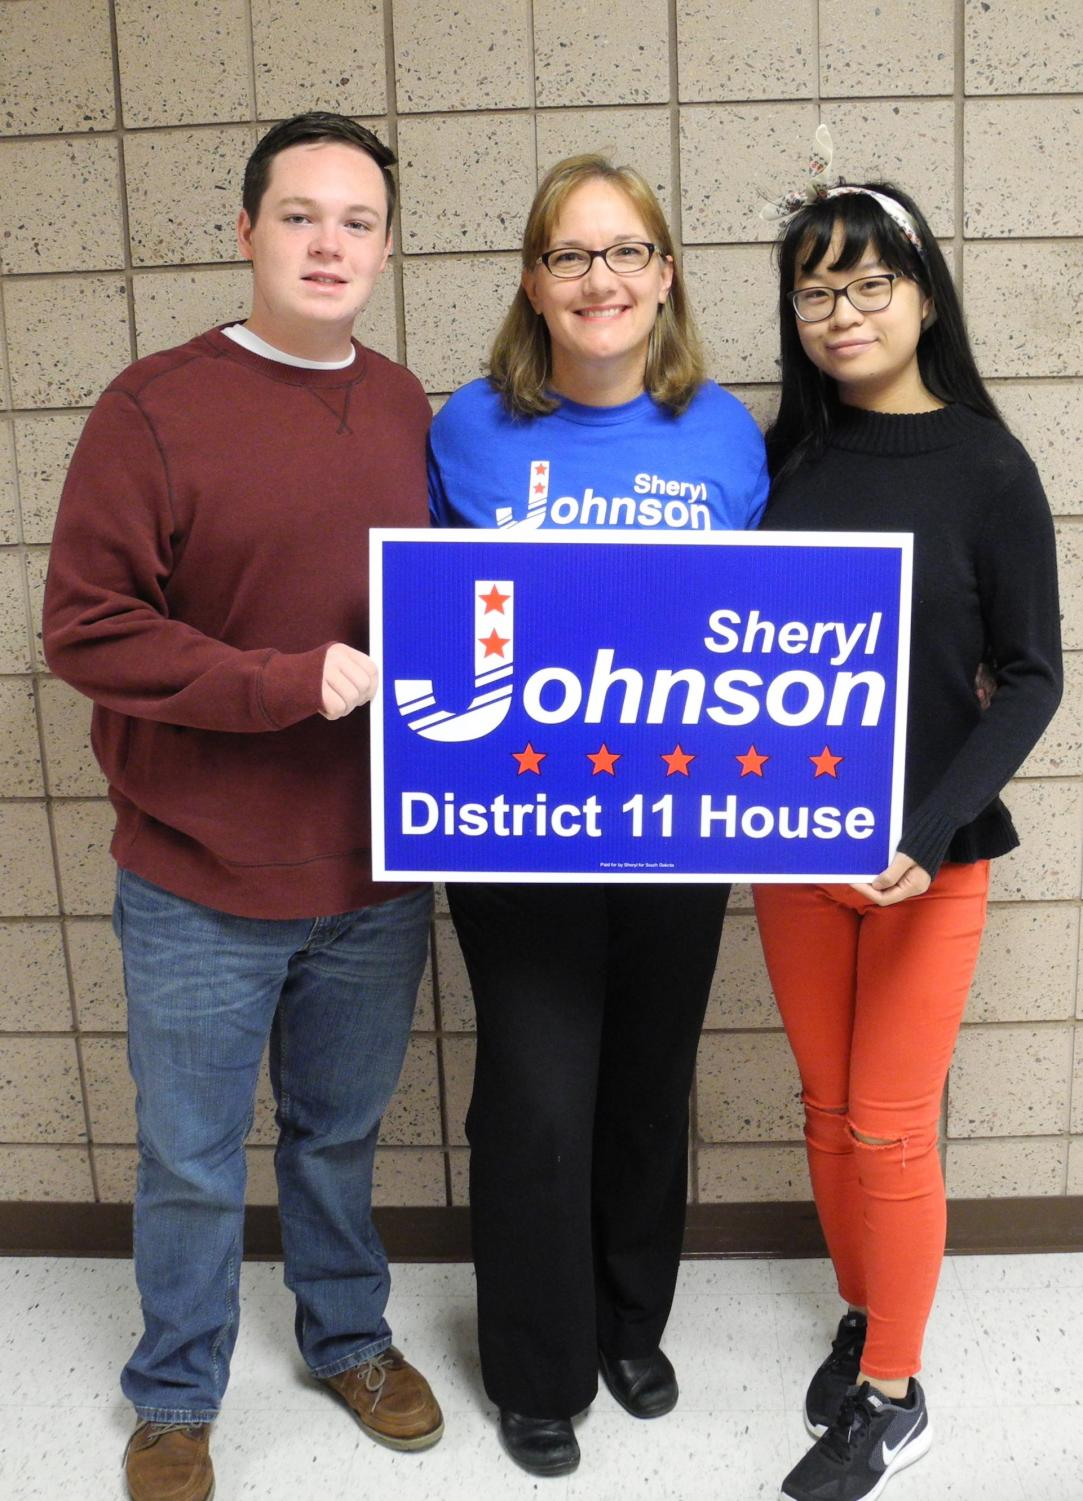 (From left to right) Jack Brenneman, Sheryl Johnson, Engie Wong